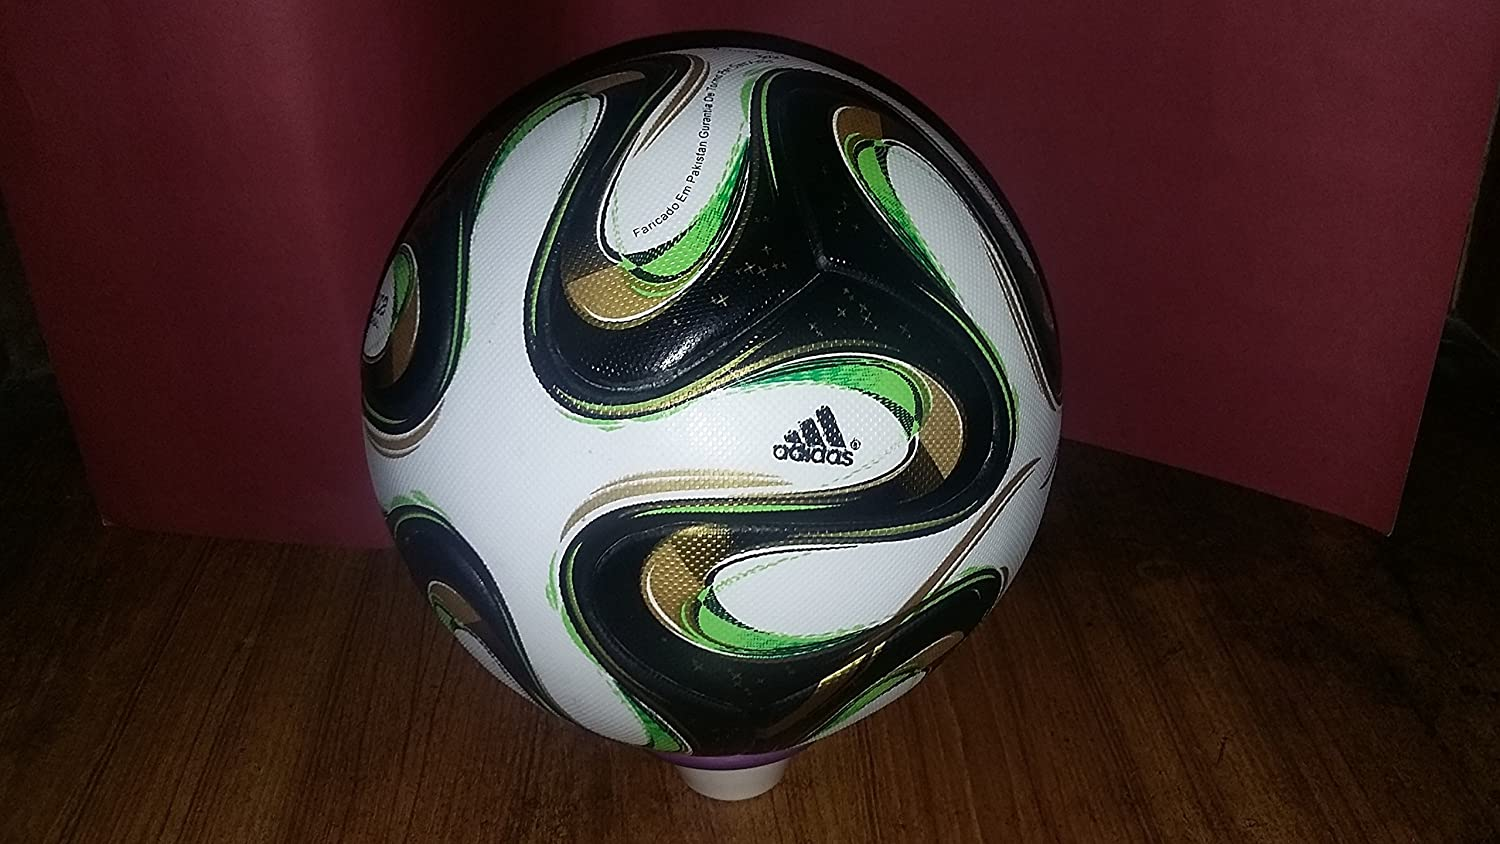 adidas 2014 FIFA World Cup Brazuca Final Rio Match Ball Replica Top Glider Size 5 туалетная бумага анекдоты ч 8 мини 815605